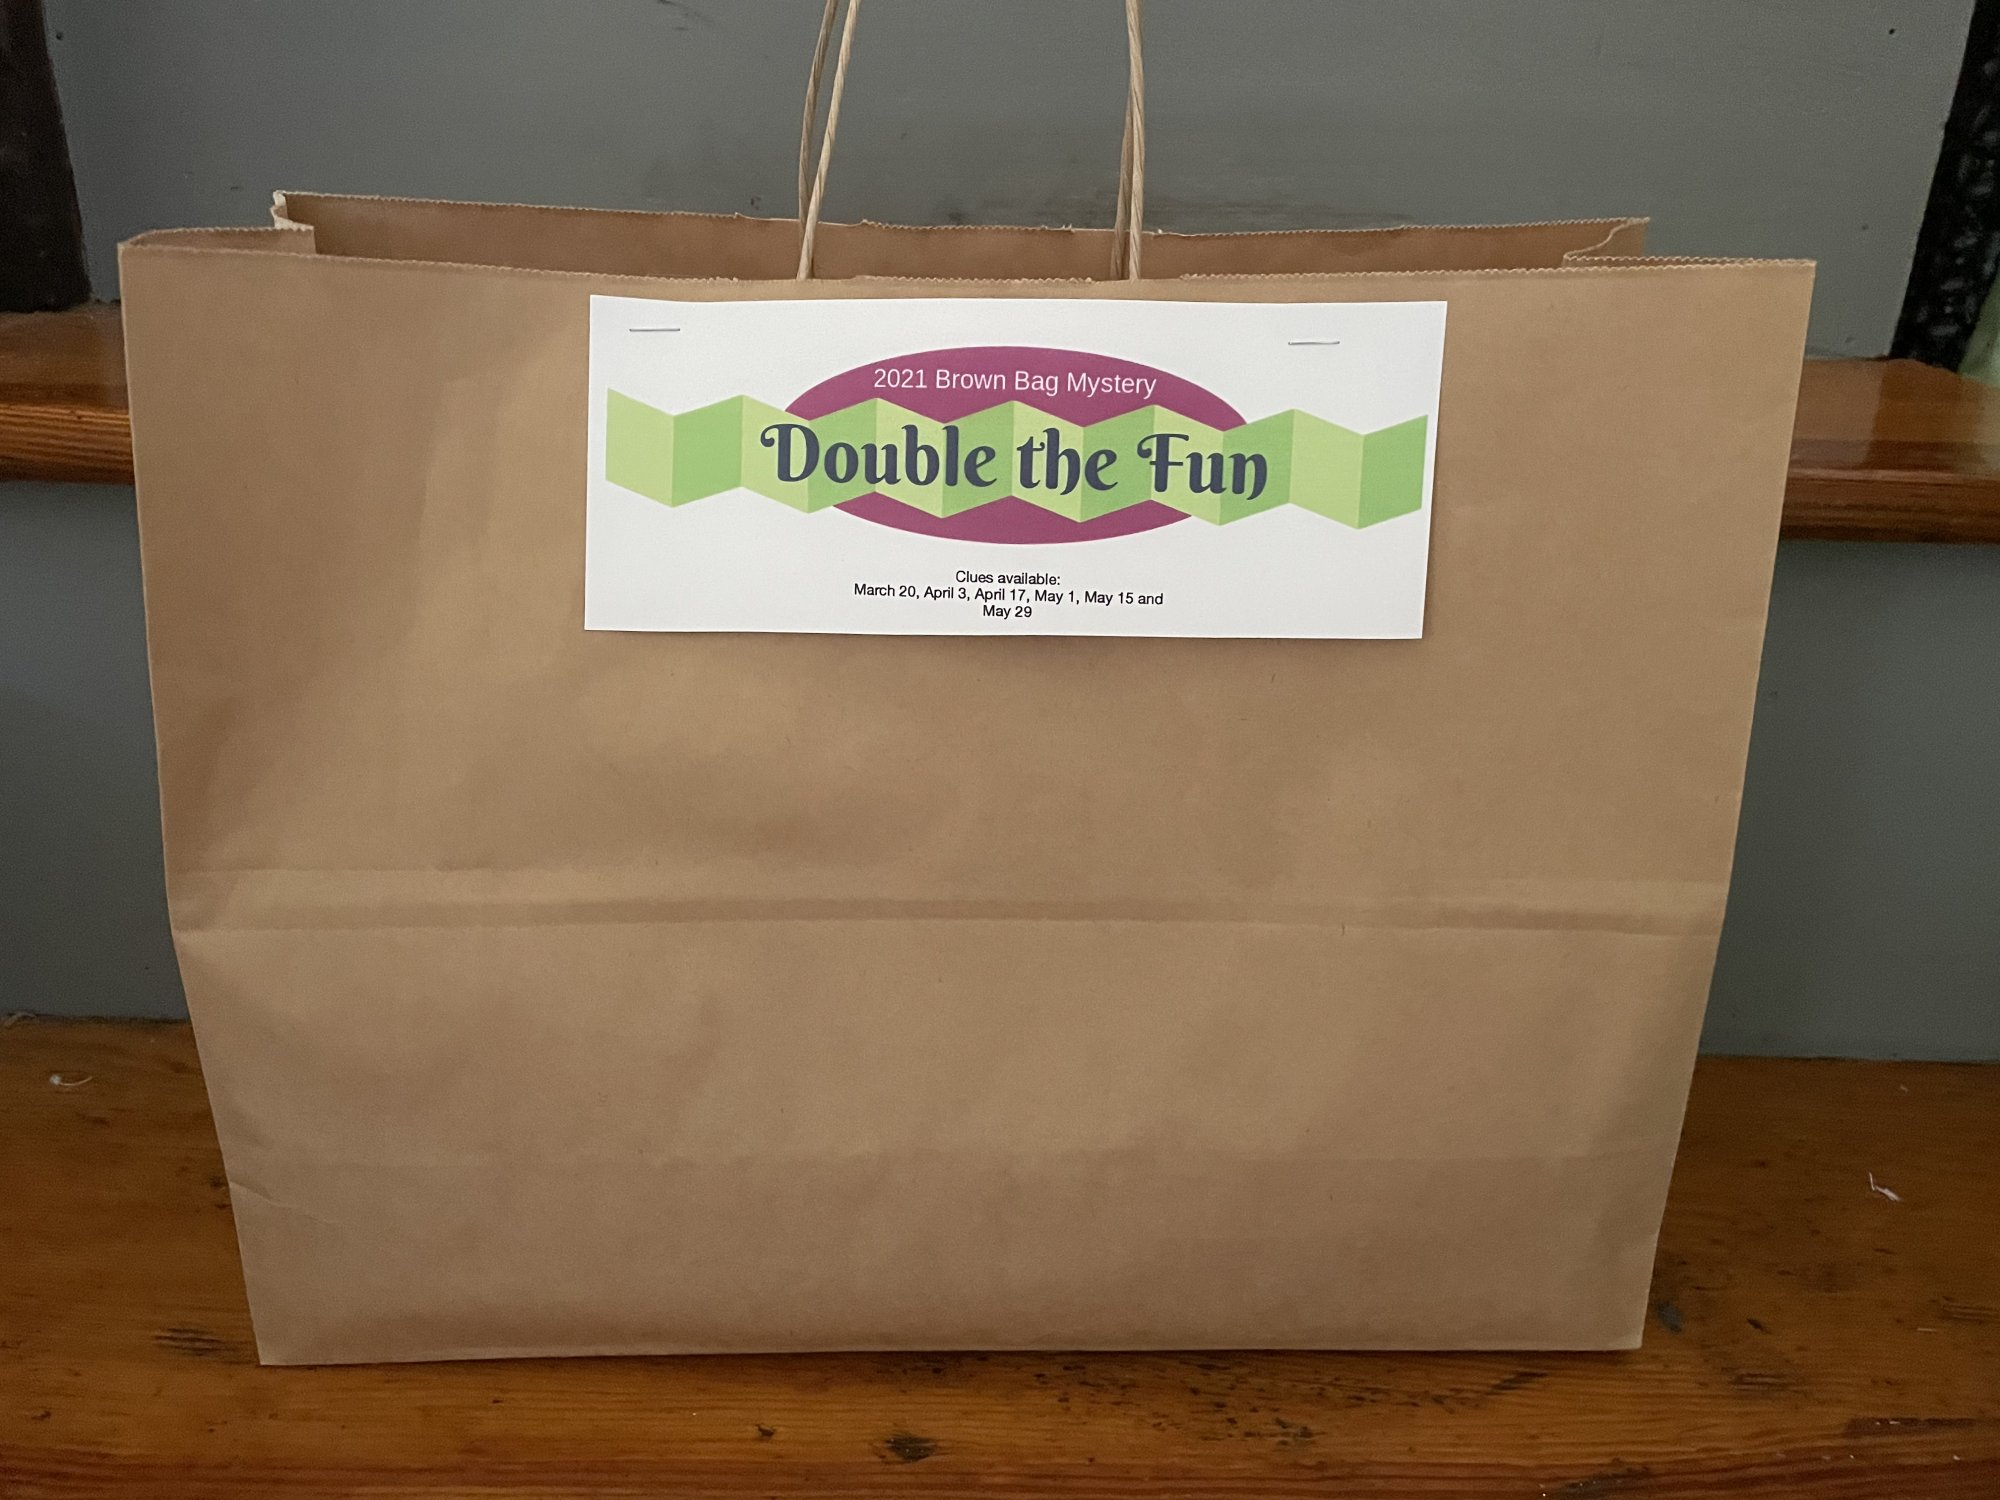 2021 Brown Bag Mystery 2021: Double the Fun